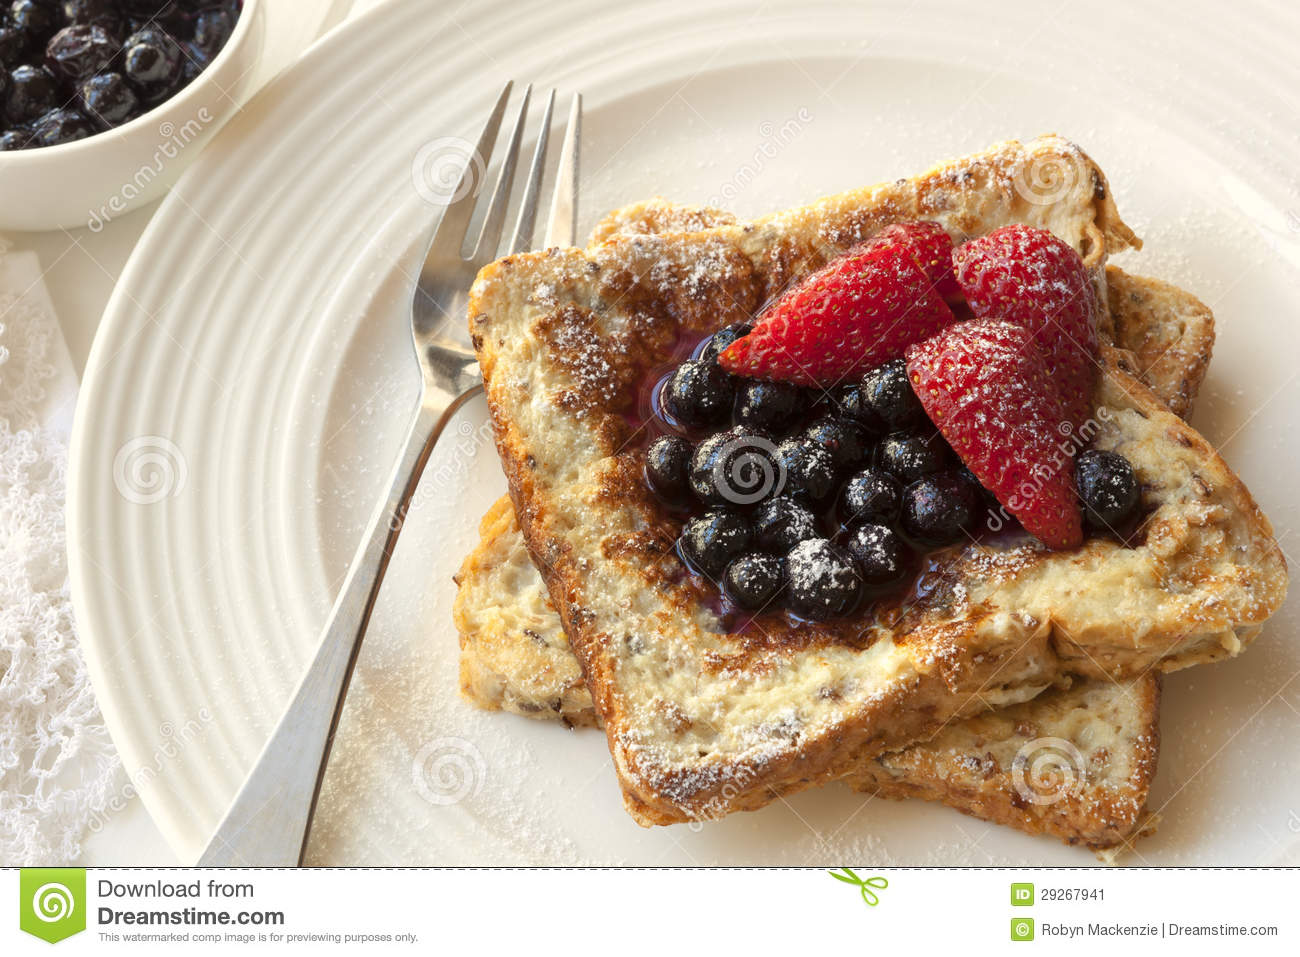 French Toast With Berries Stock Image - Image: 29267941